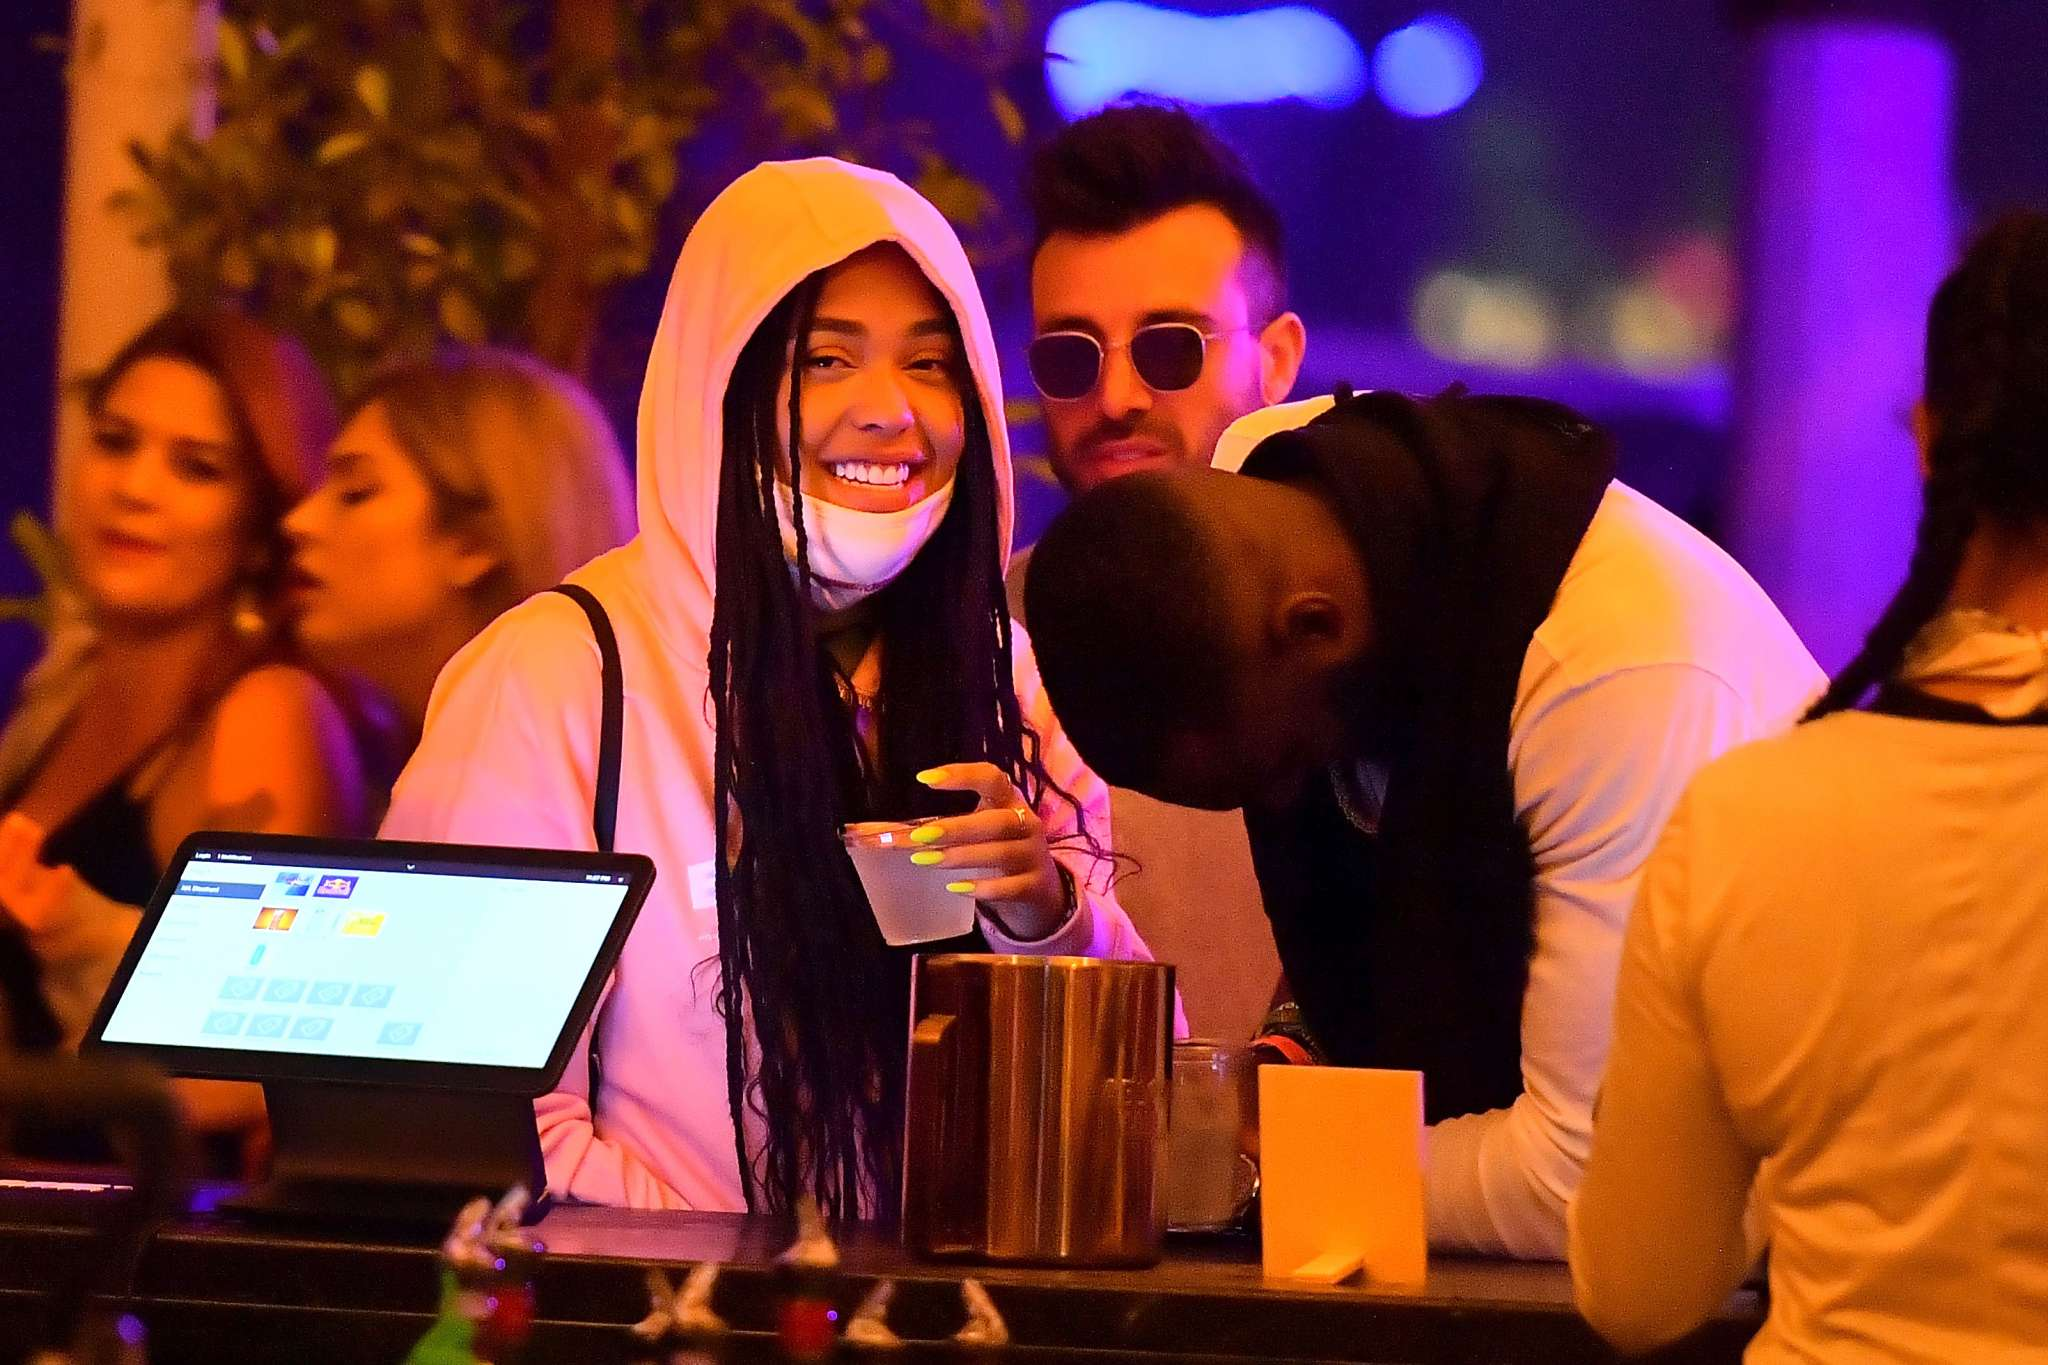 Jordyn Woods Runs Into Kendall Jenner And Hailey Baldwin At Coachella And She's Reportedly 'Uncomfortable'